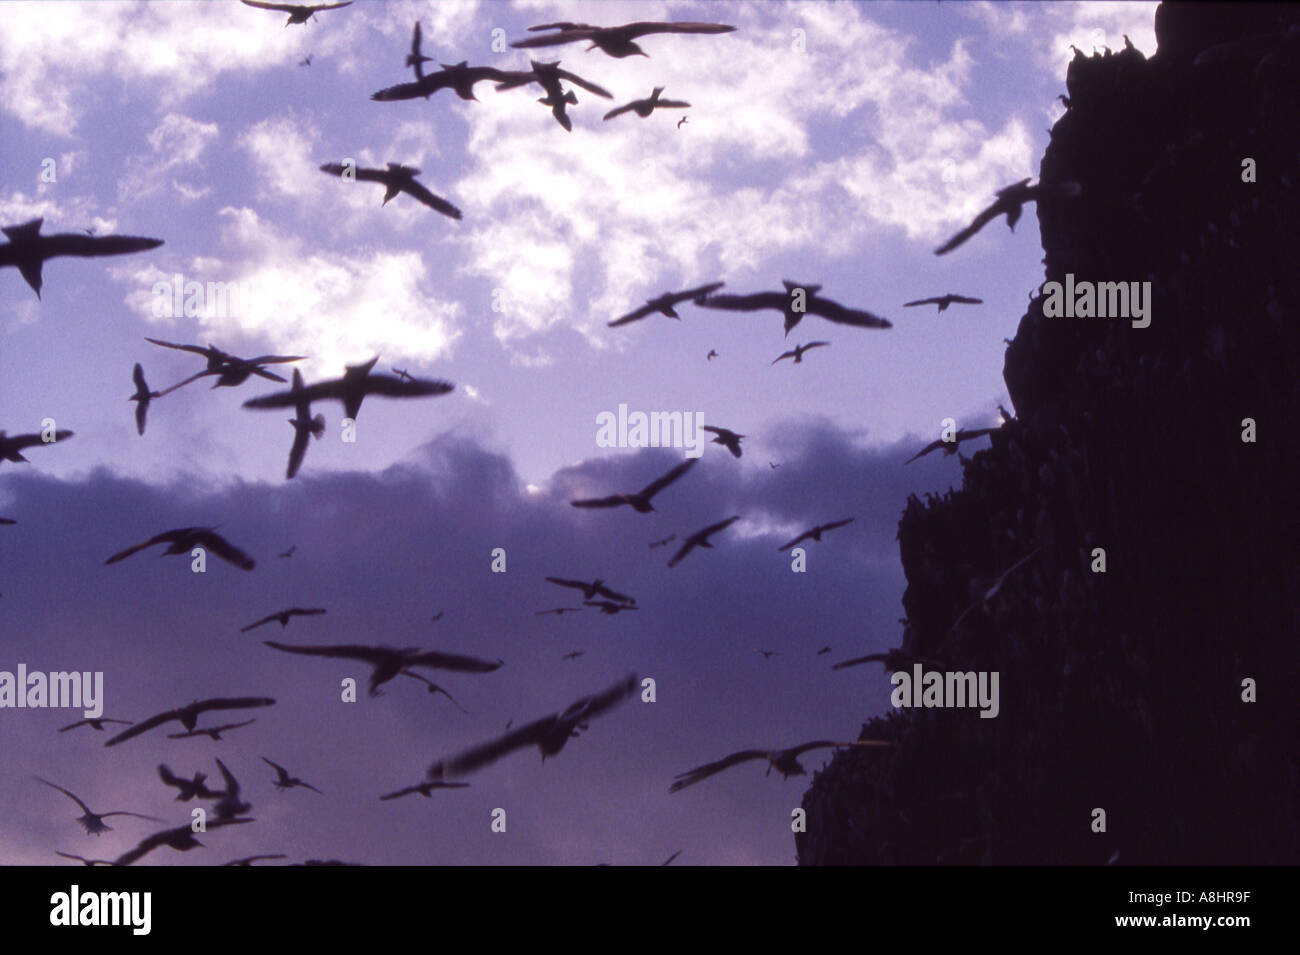 Abstract detail flock of cliff nesting birds in flight in silhouette at twilight - Stock Image